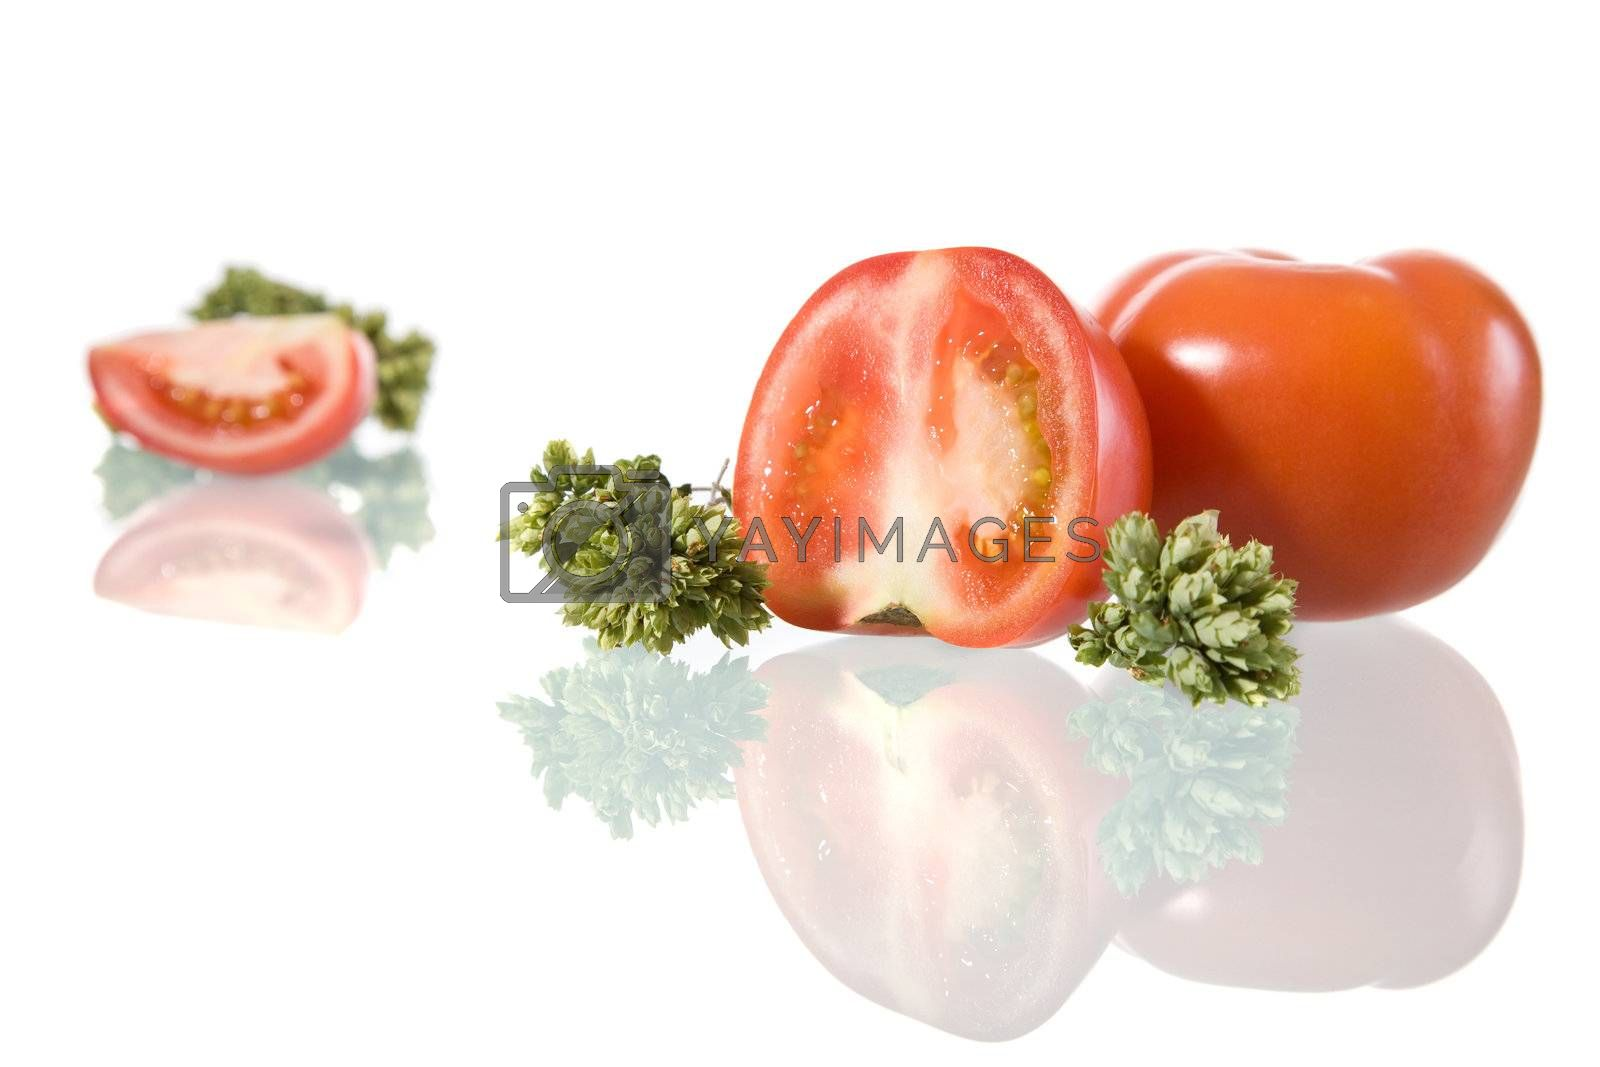 Tomatoes and oregano leafs, isolated on white background.